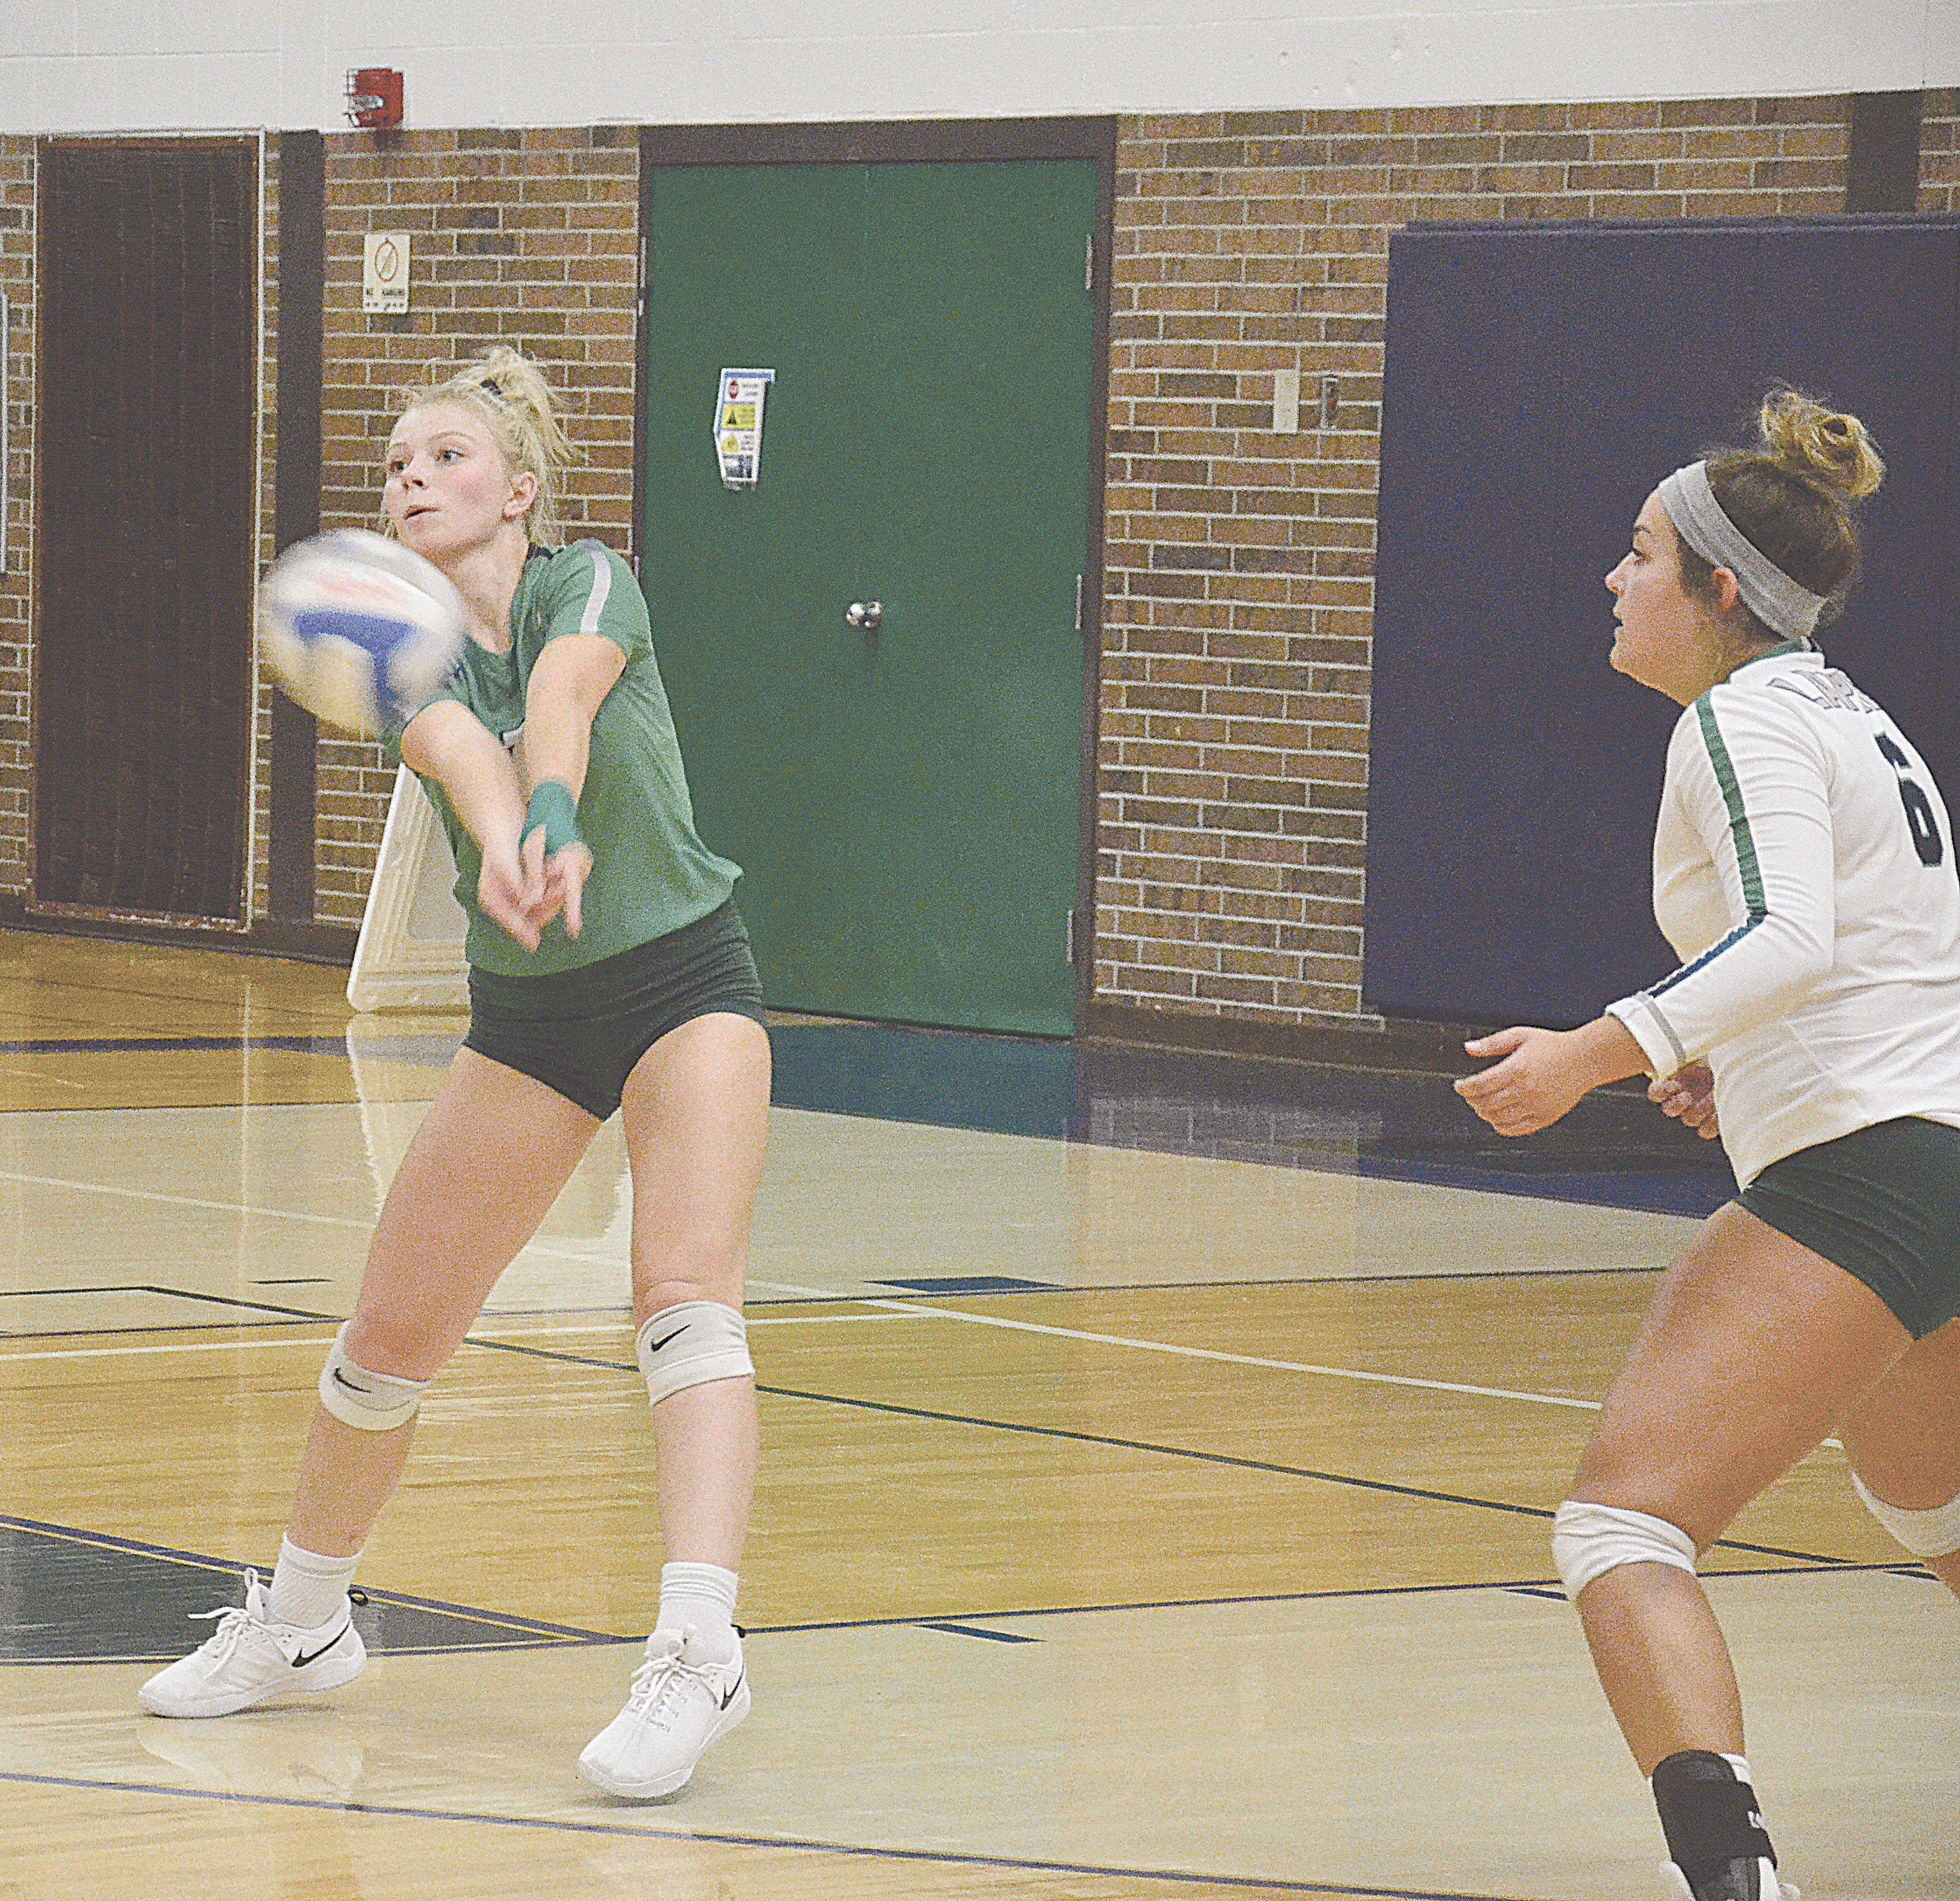 2019 20 High School Volleyball Rules Changes Impact Uniforms Pre Match Protocol The County Press